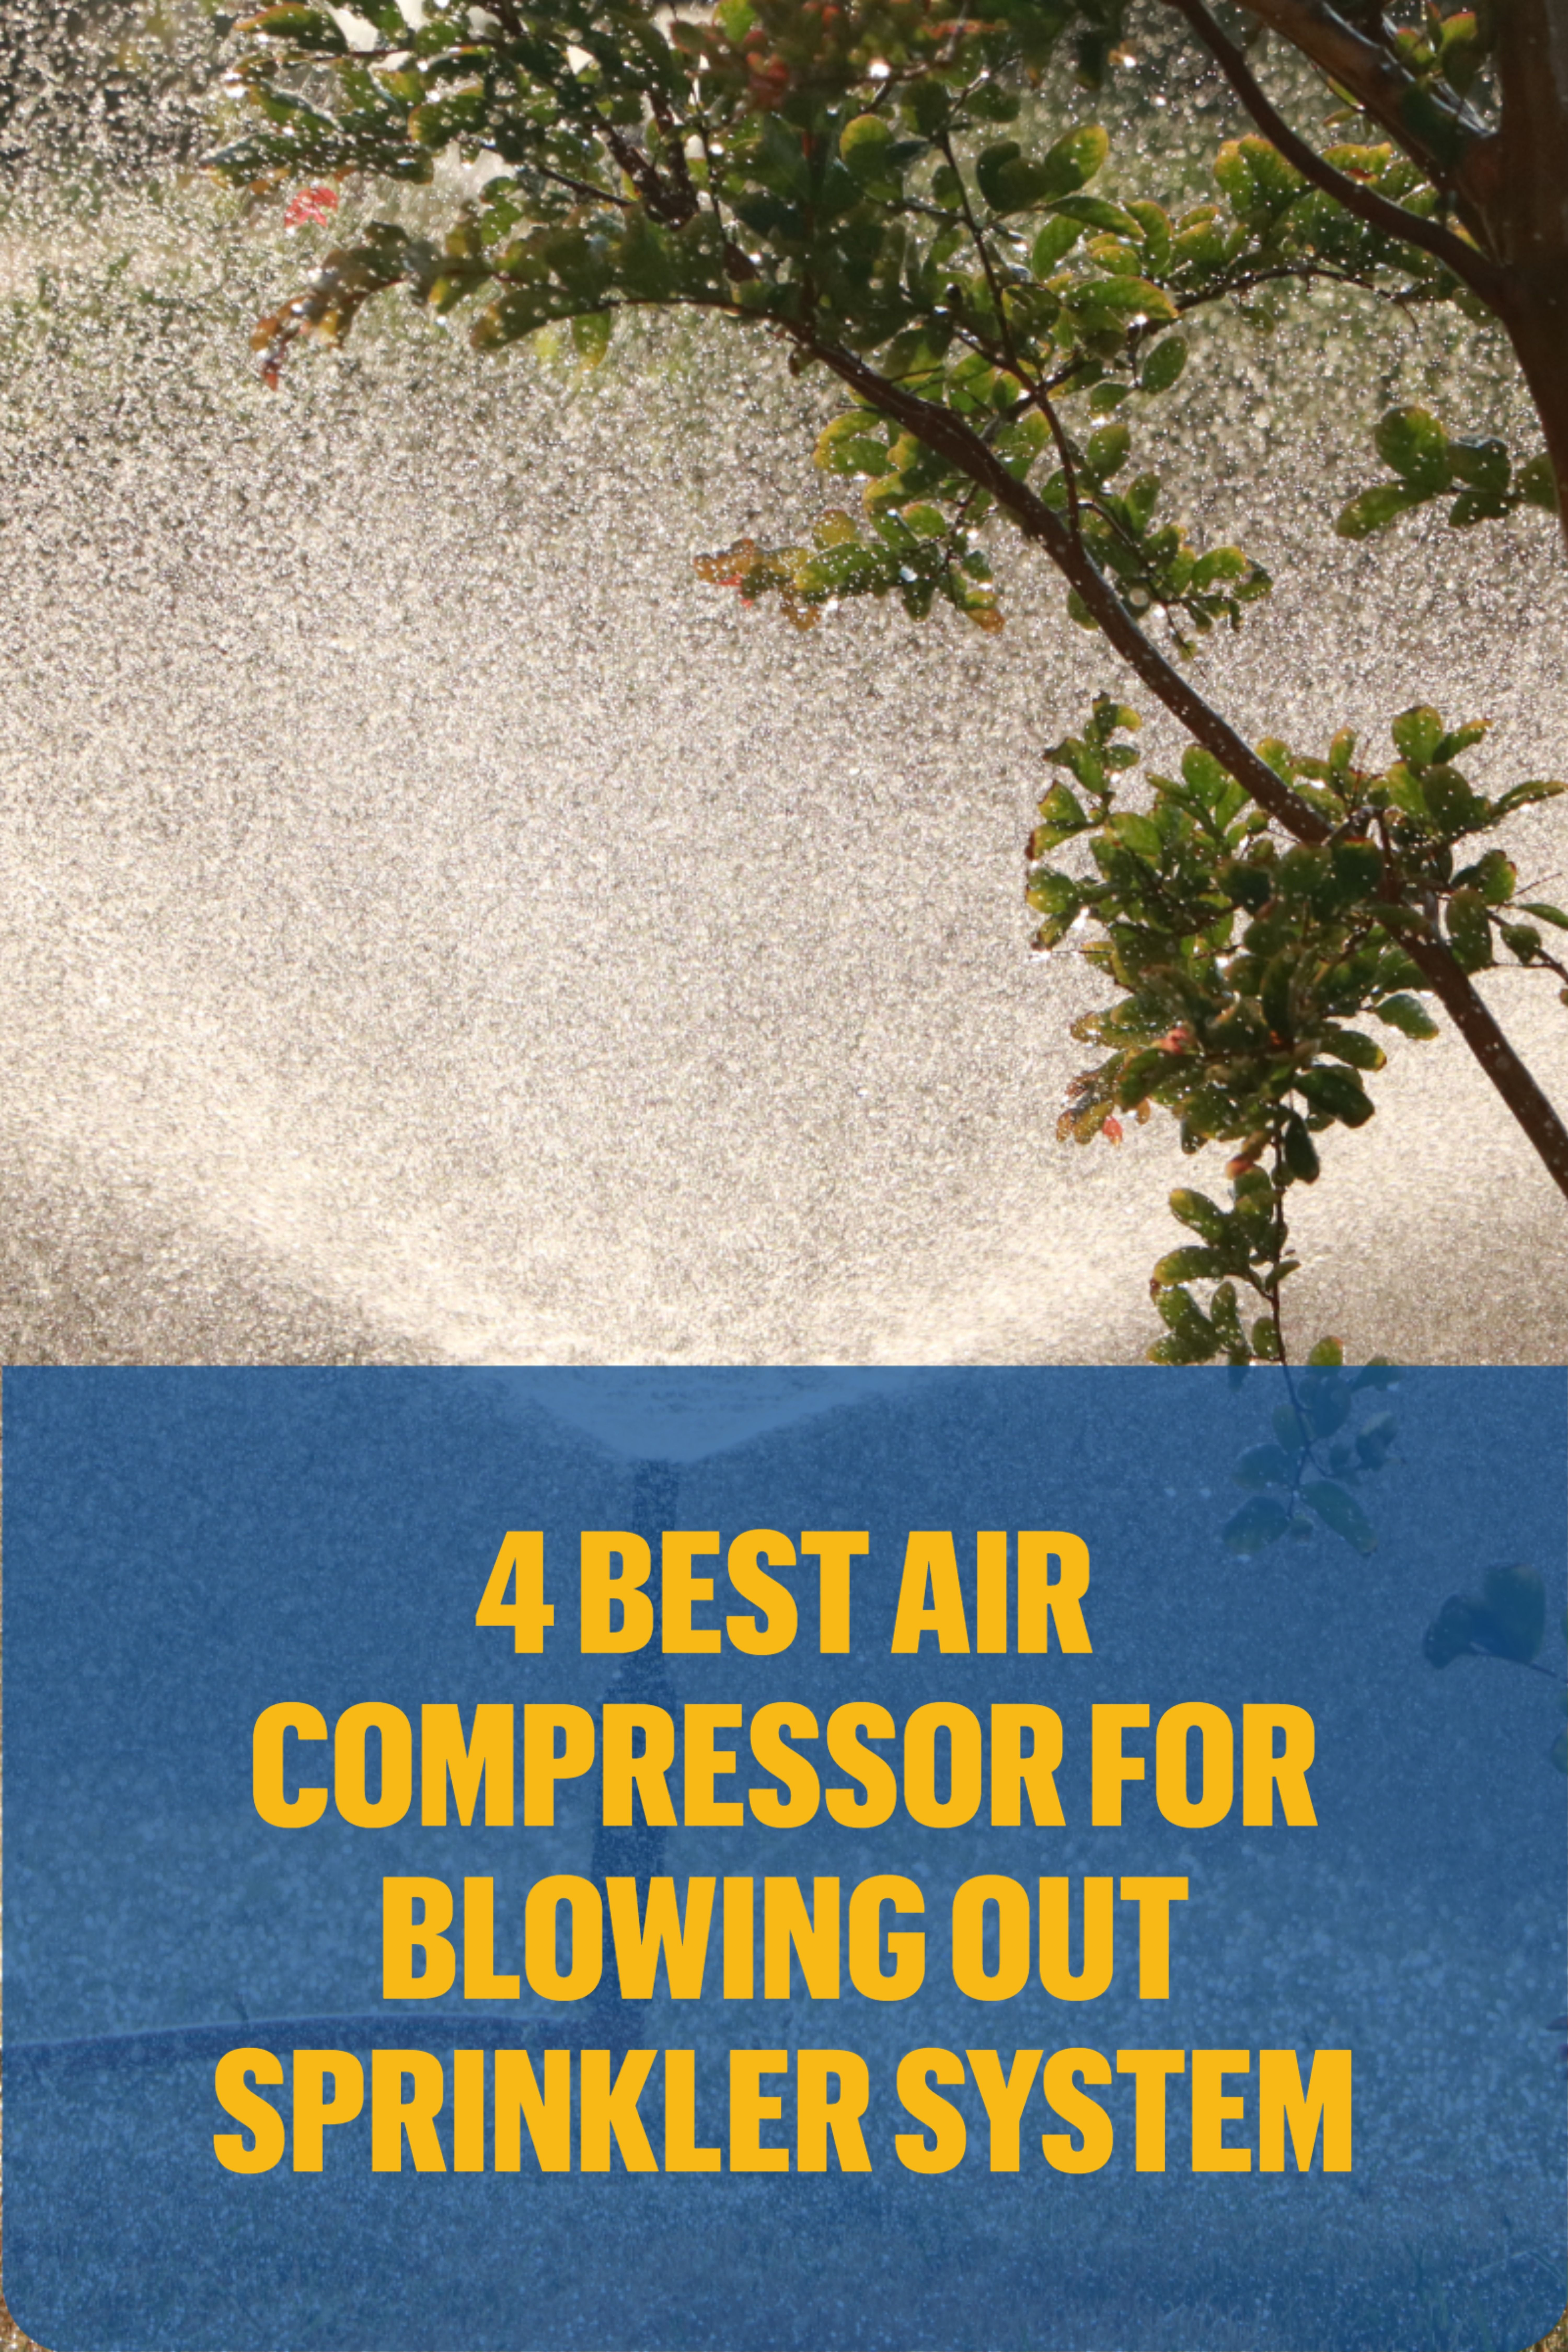 4 Best Air Compressors for Blowing Out Sprinkler System in